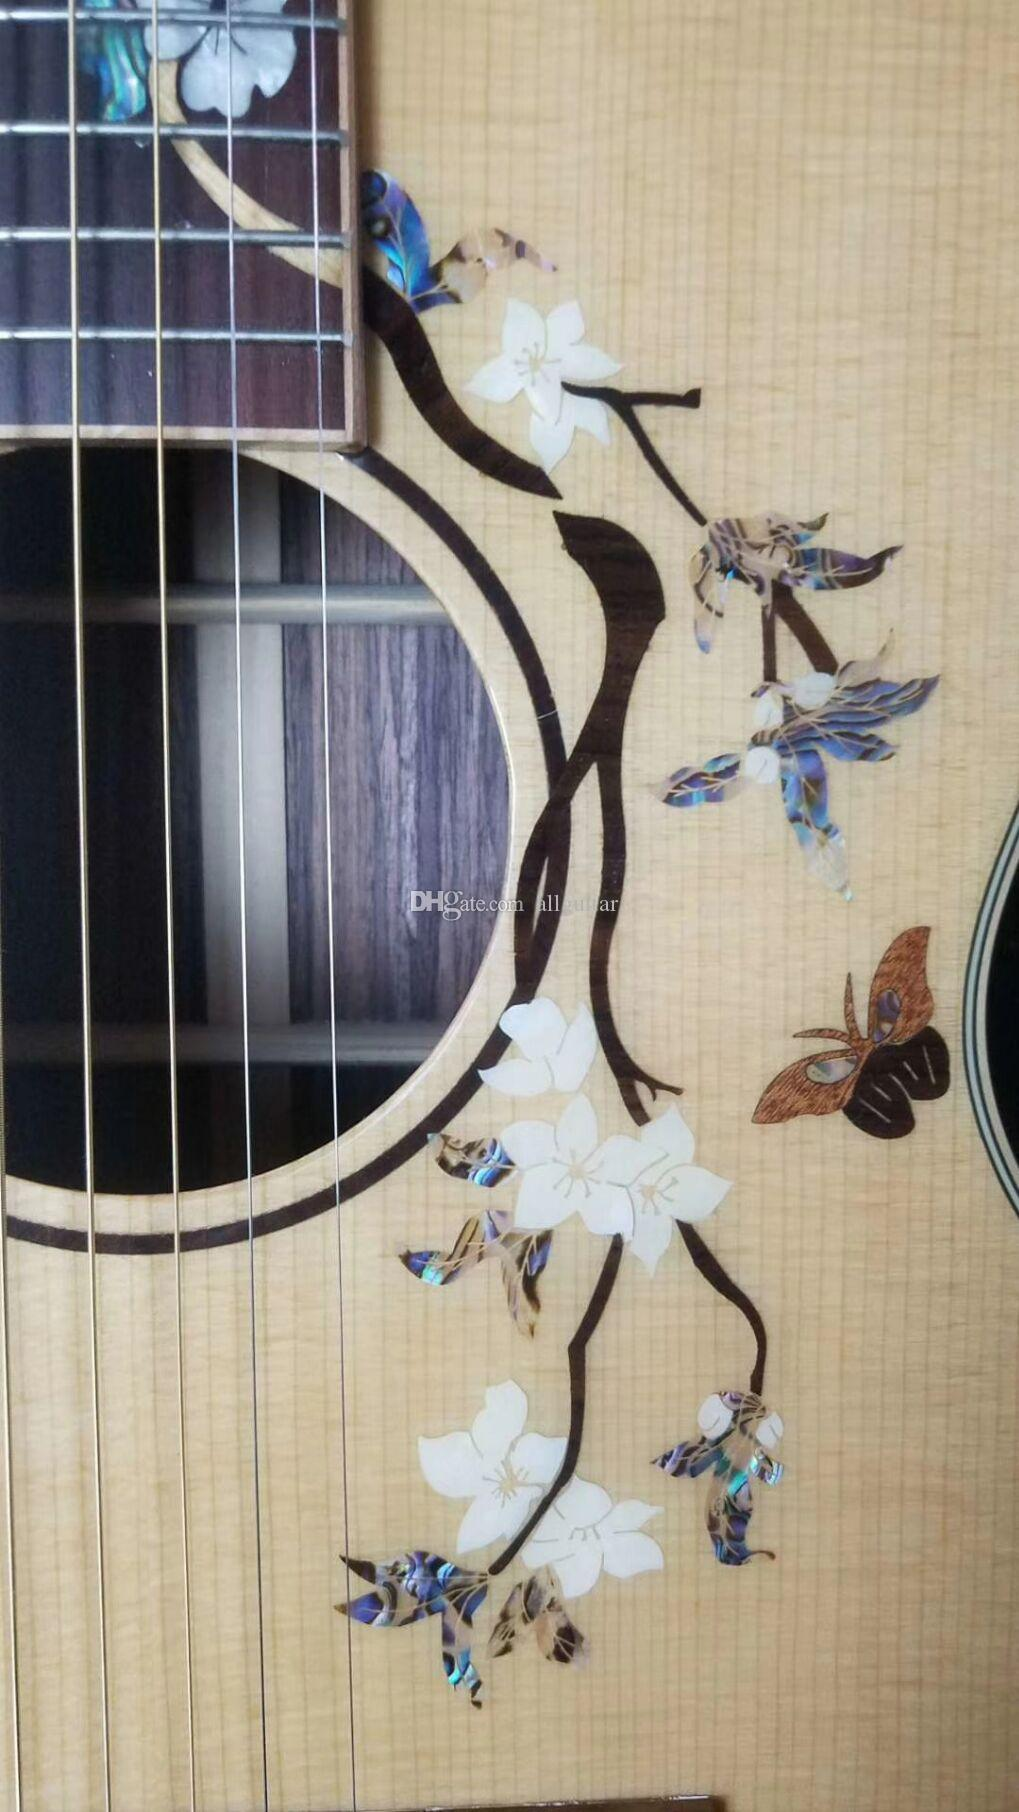 2018 New China Acoustic guitar flowers inlays body 41 inch OM model natural solid spruce guitar red rosewood binding body Chinese guitars